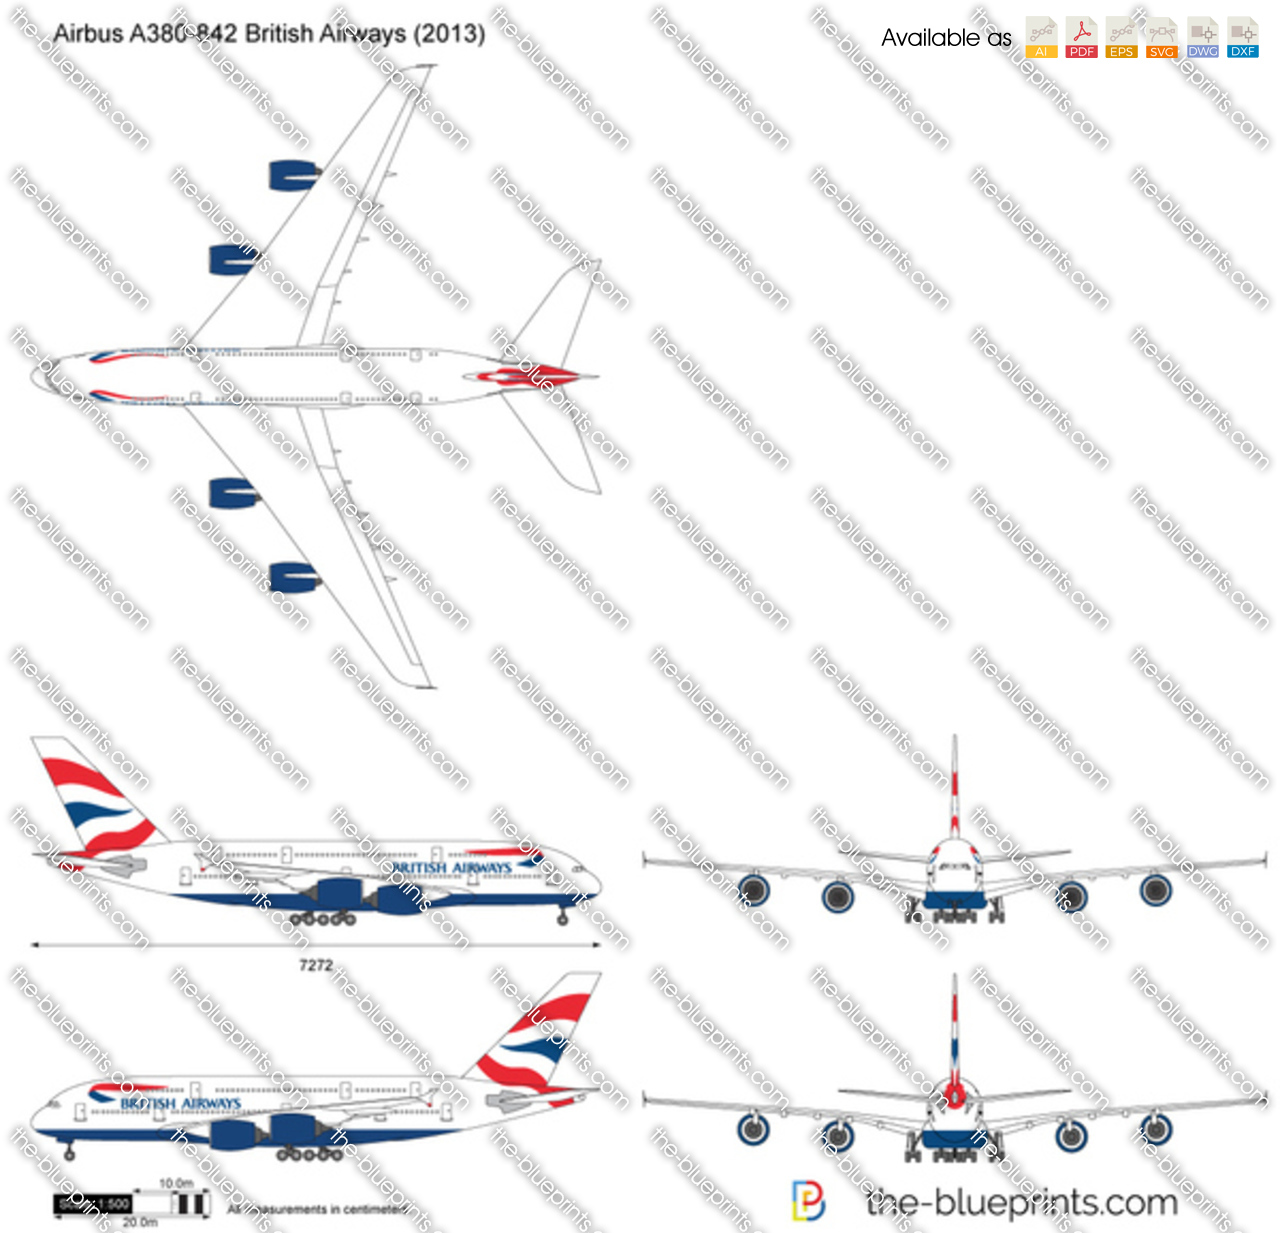 2014 Airbus A380-842 British Airways